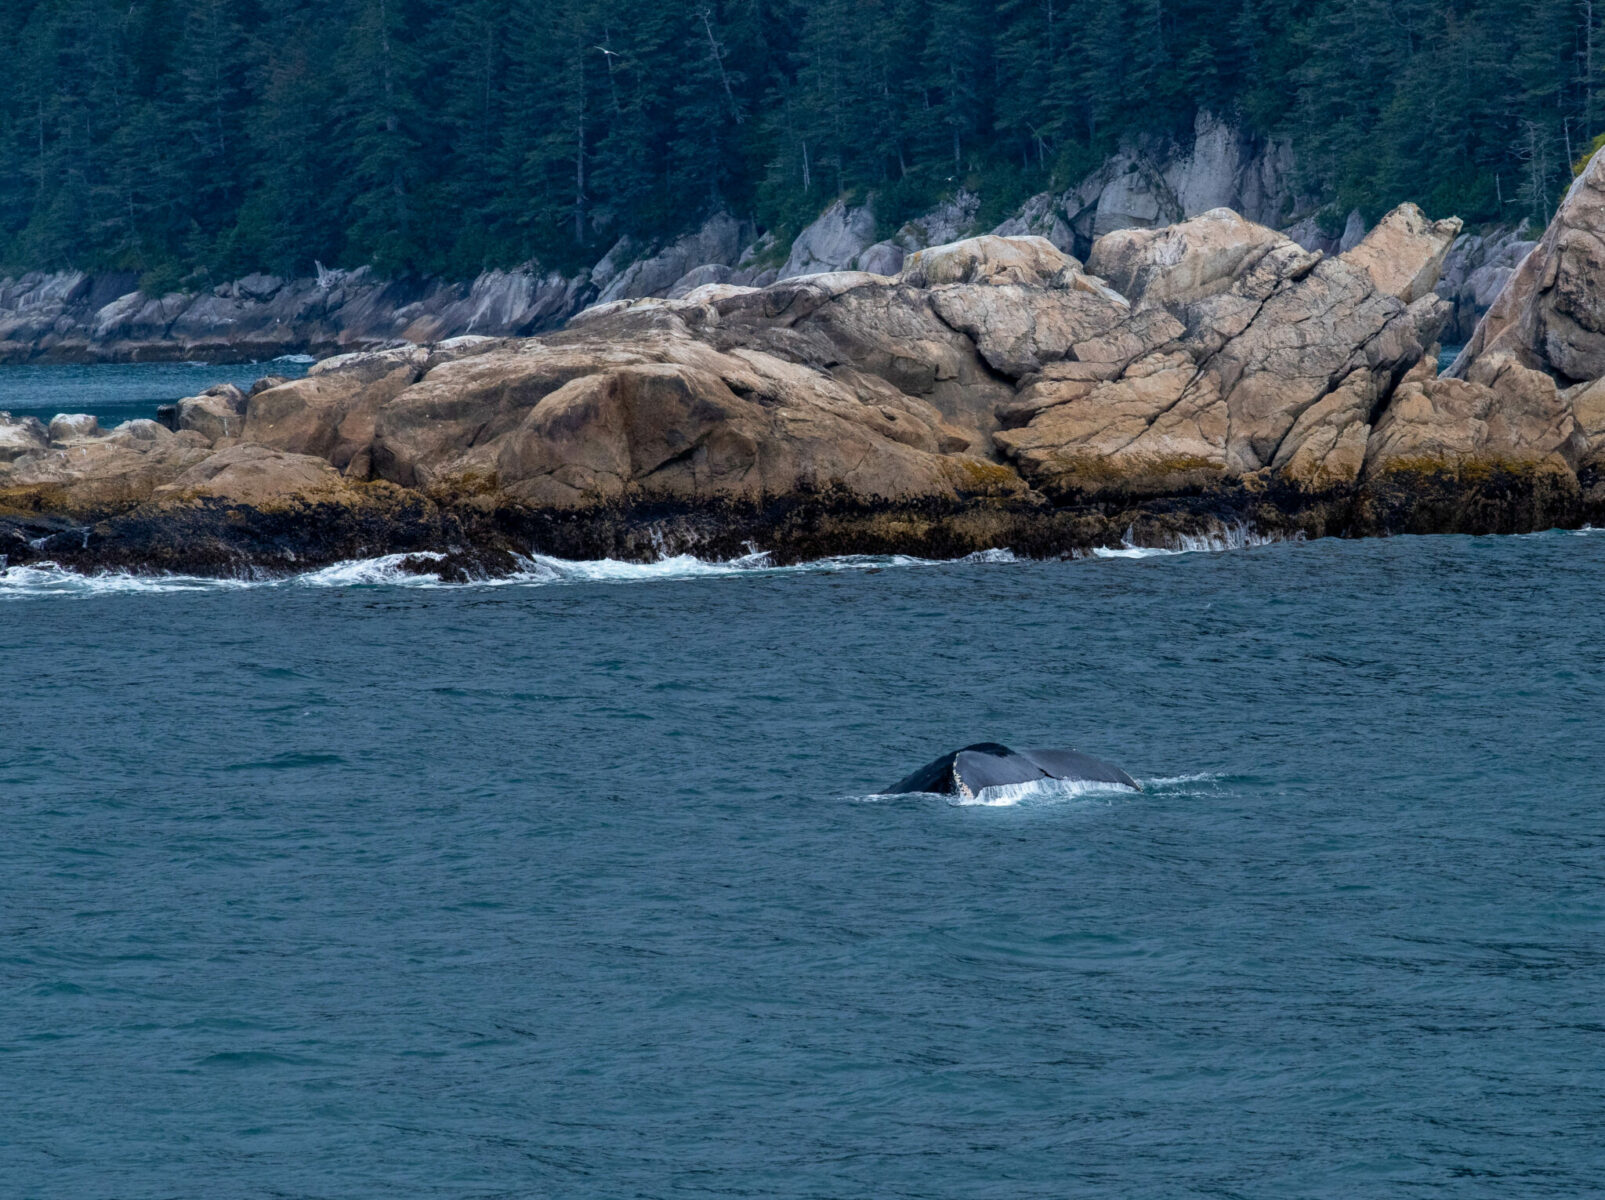 A humpback whale dives near the shore against a rocky headland